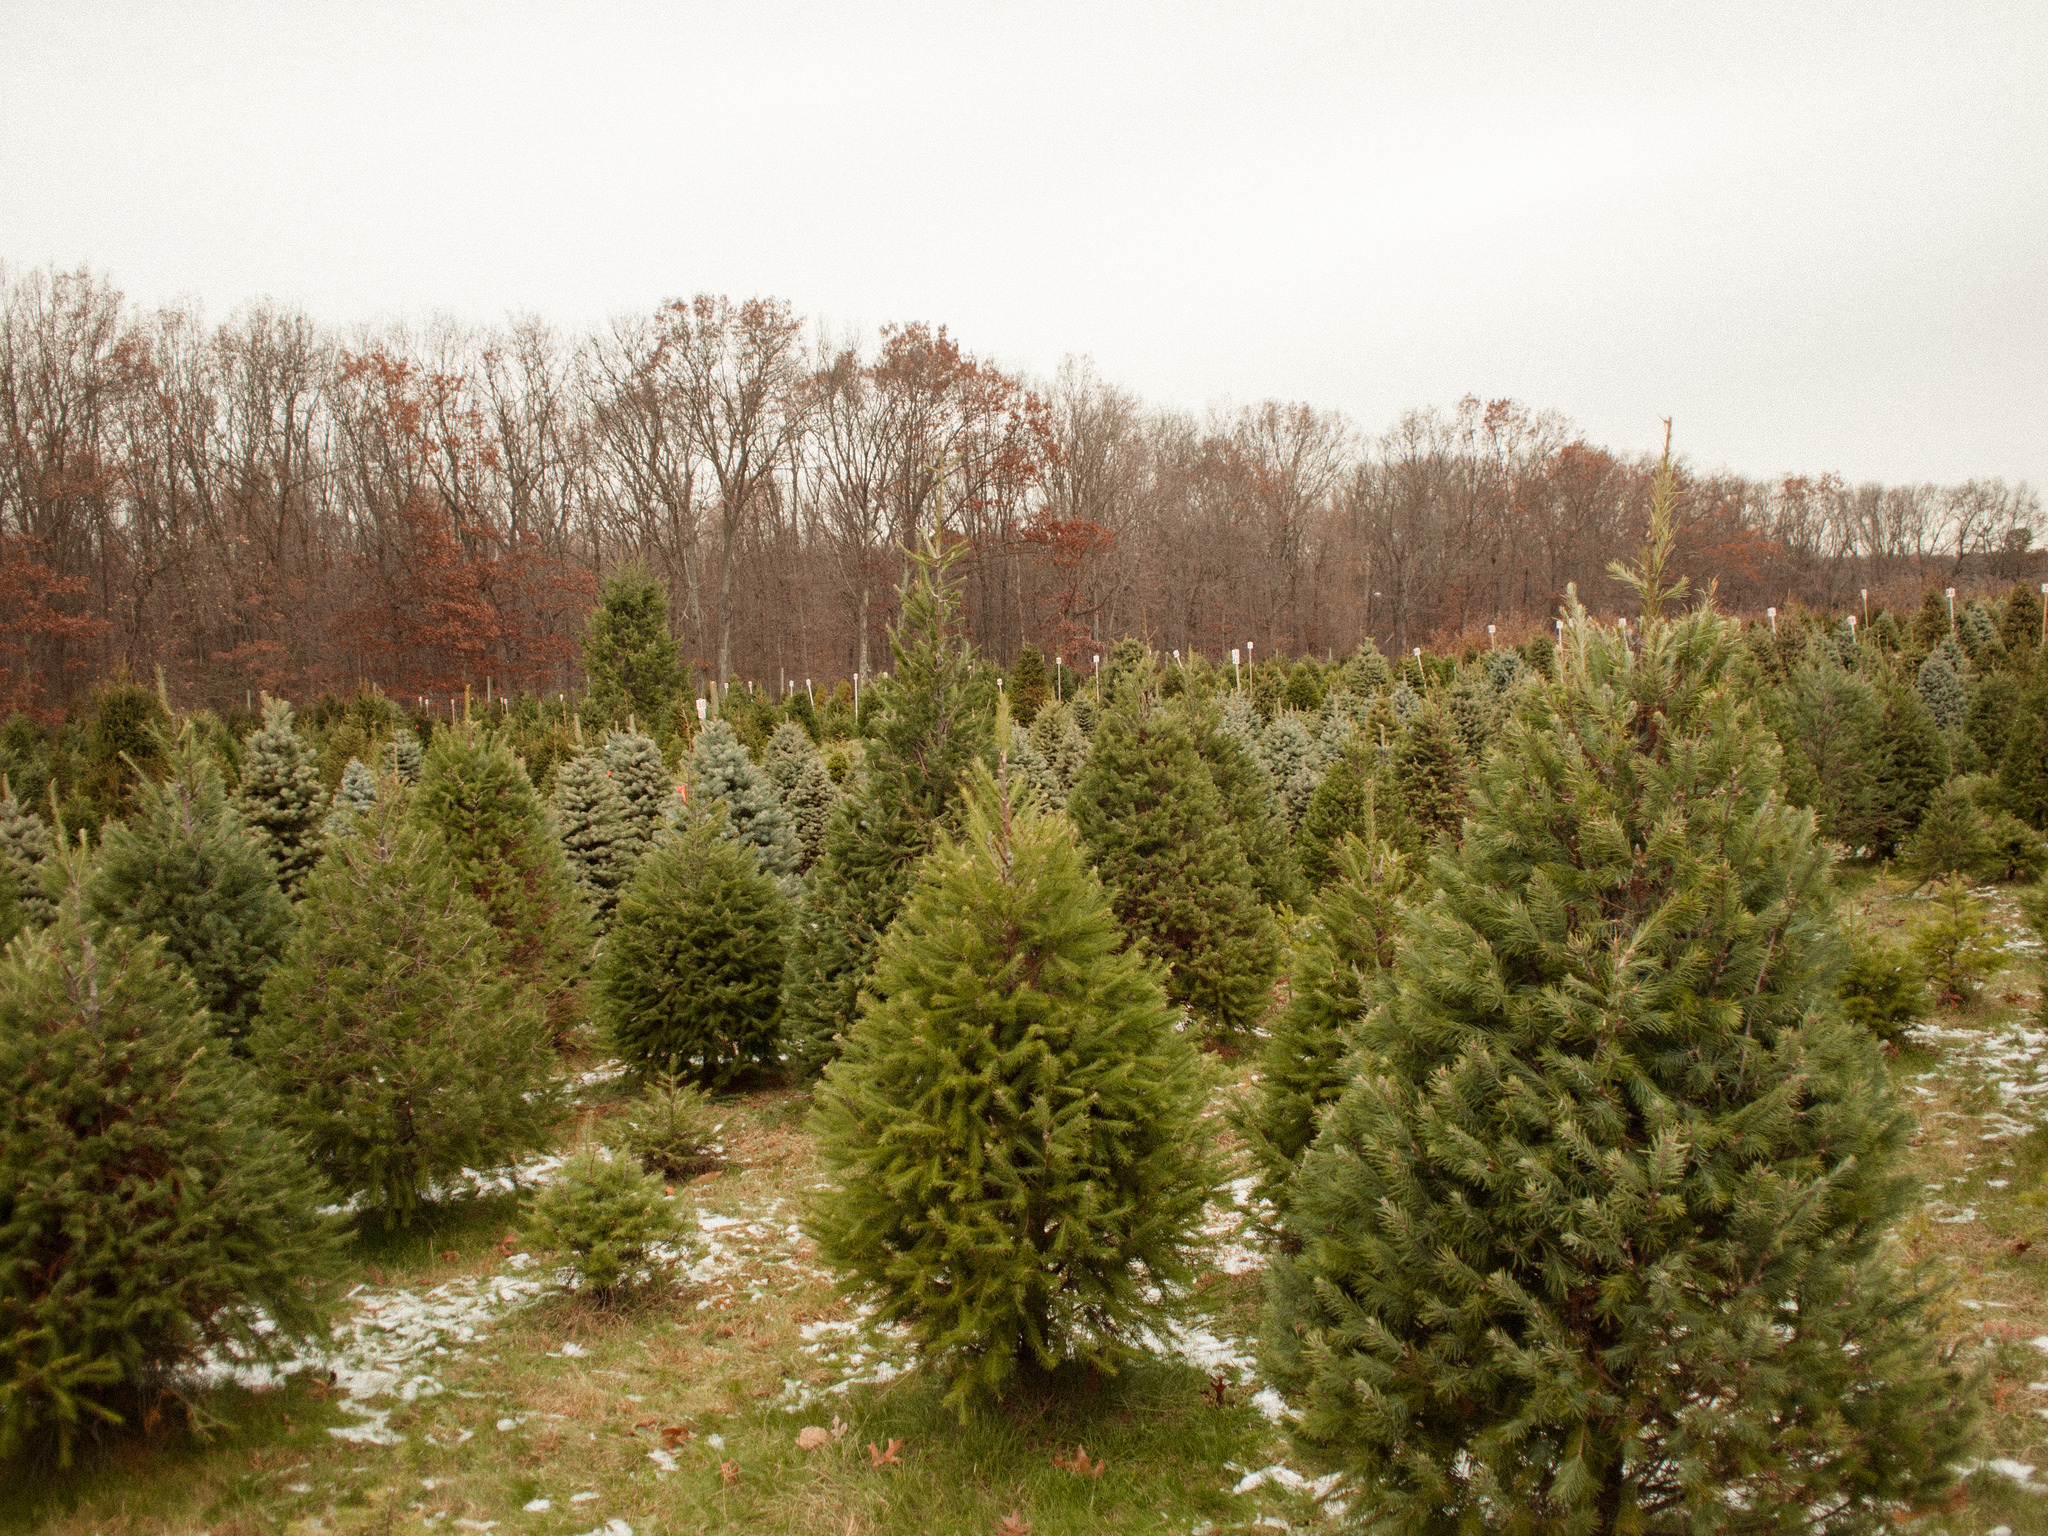 Christmas trees. Photo by Tom Simpson/flickr/CC BY-NC-ND 2.0